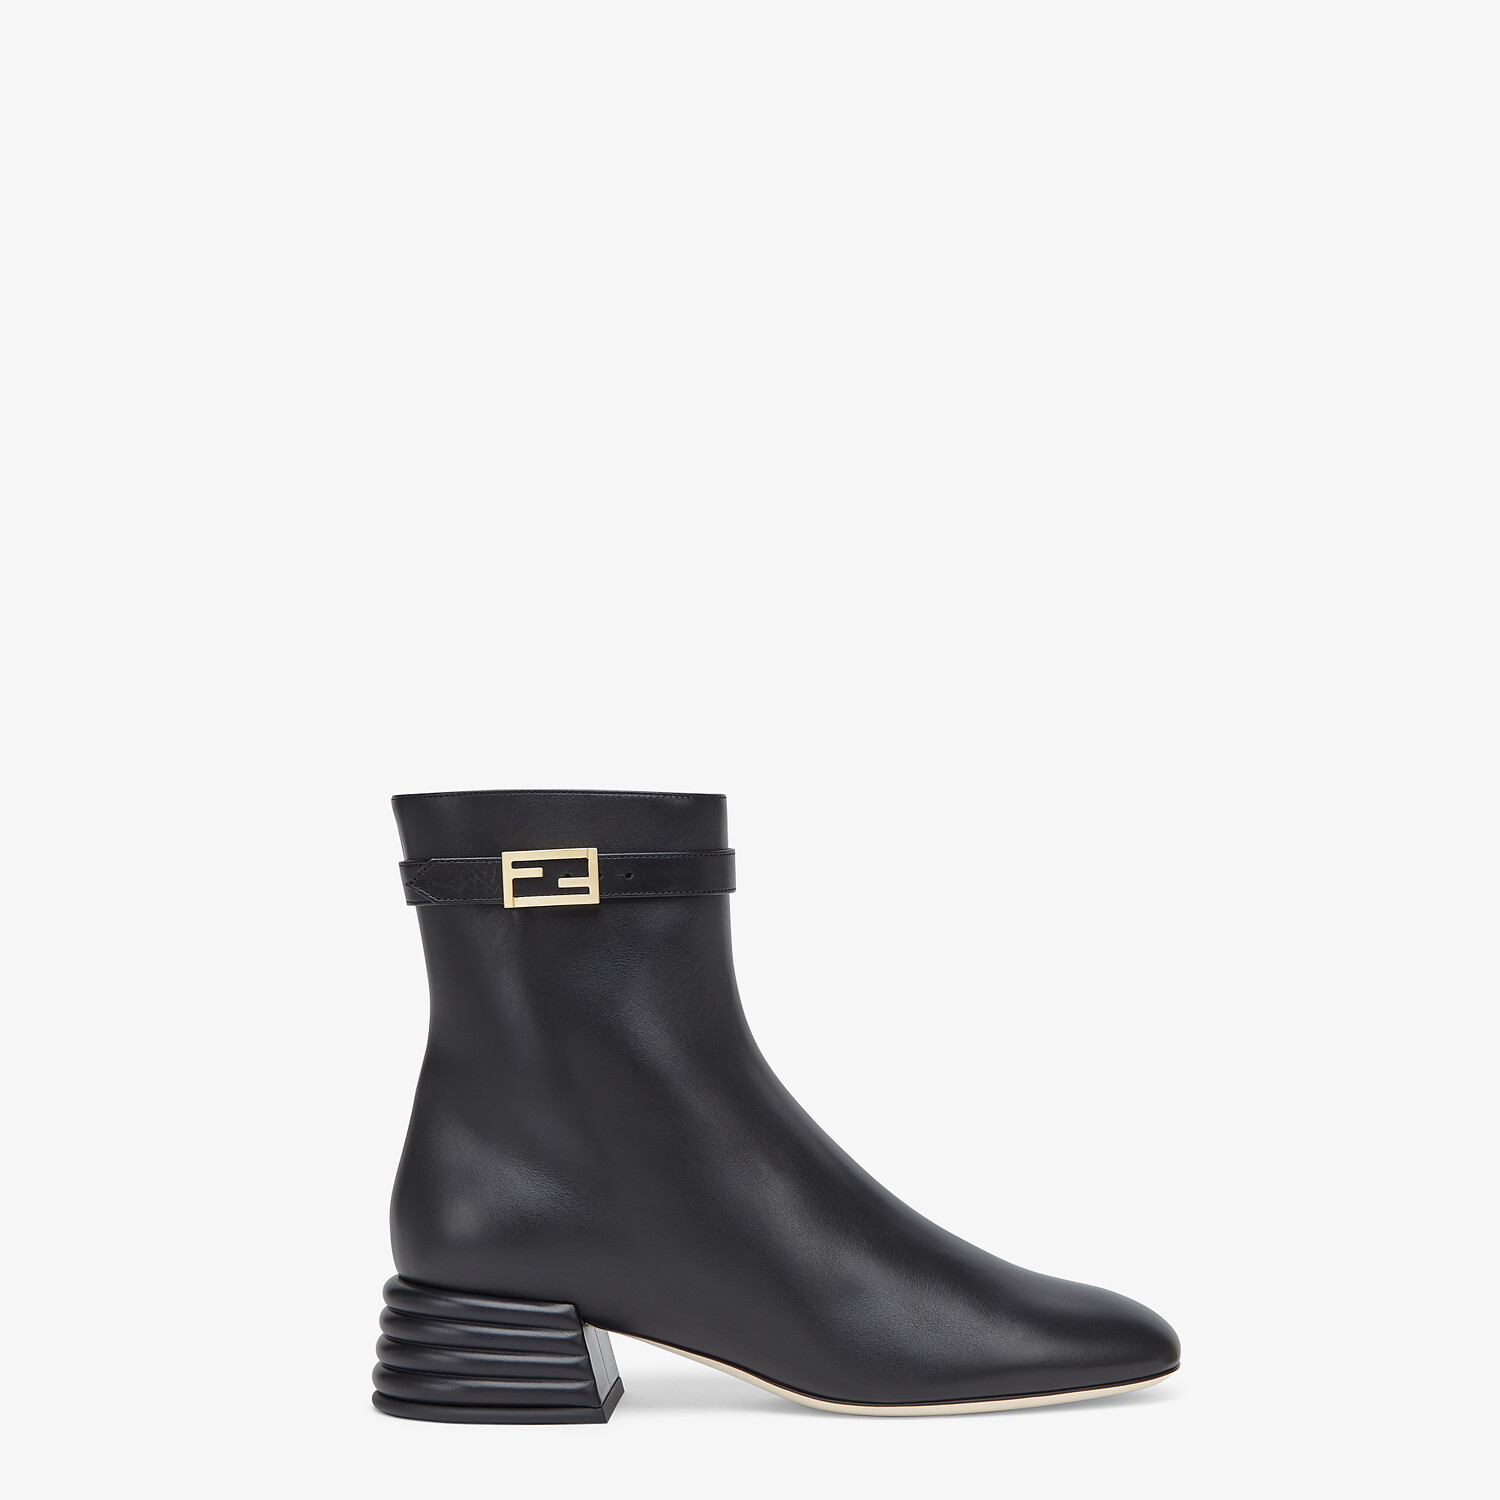 FENDI ANKLE BOOTS - Black leather booties - view 1 detail